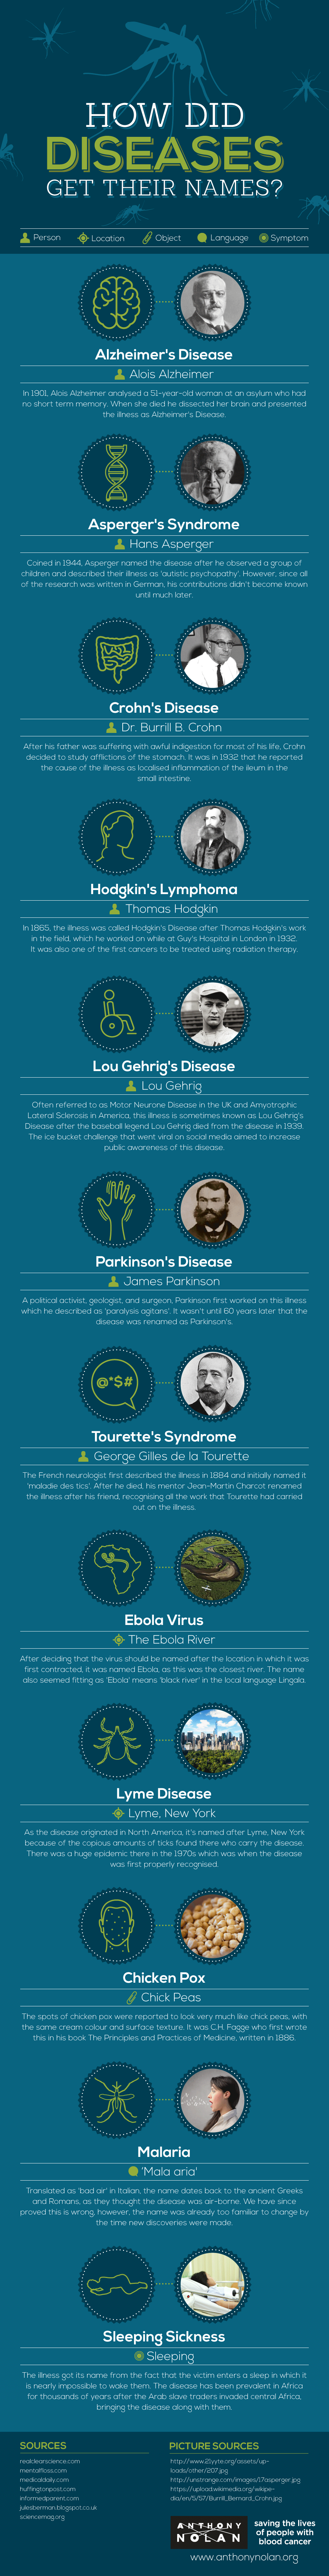 How Did Diseases Get Their Names?